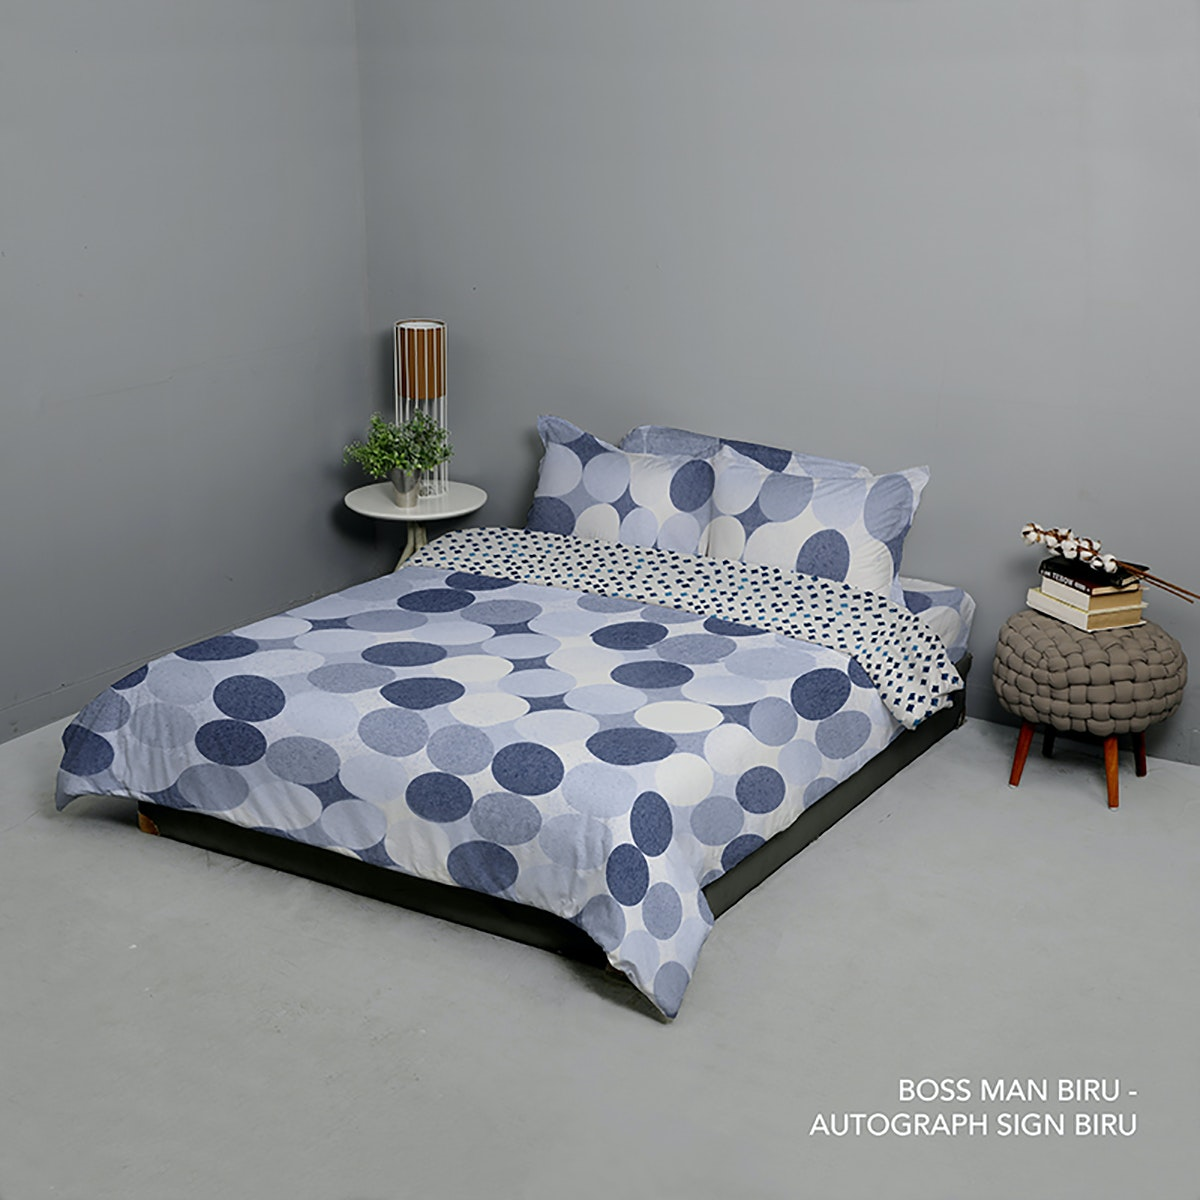 King Rabbit Set Bed Cover & Sprei Sarung Bantal King Motif Boss Man - Biru Uk 180x200x40 cm